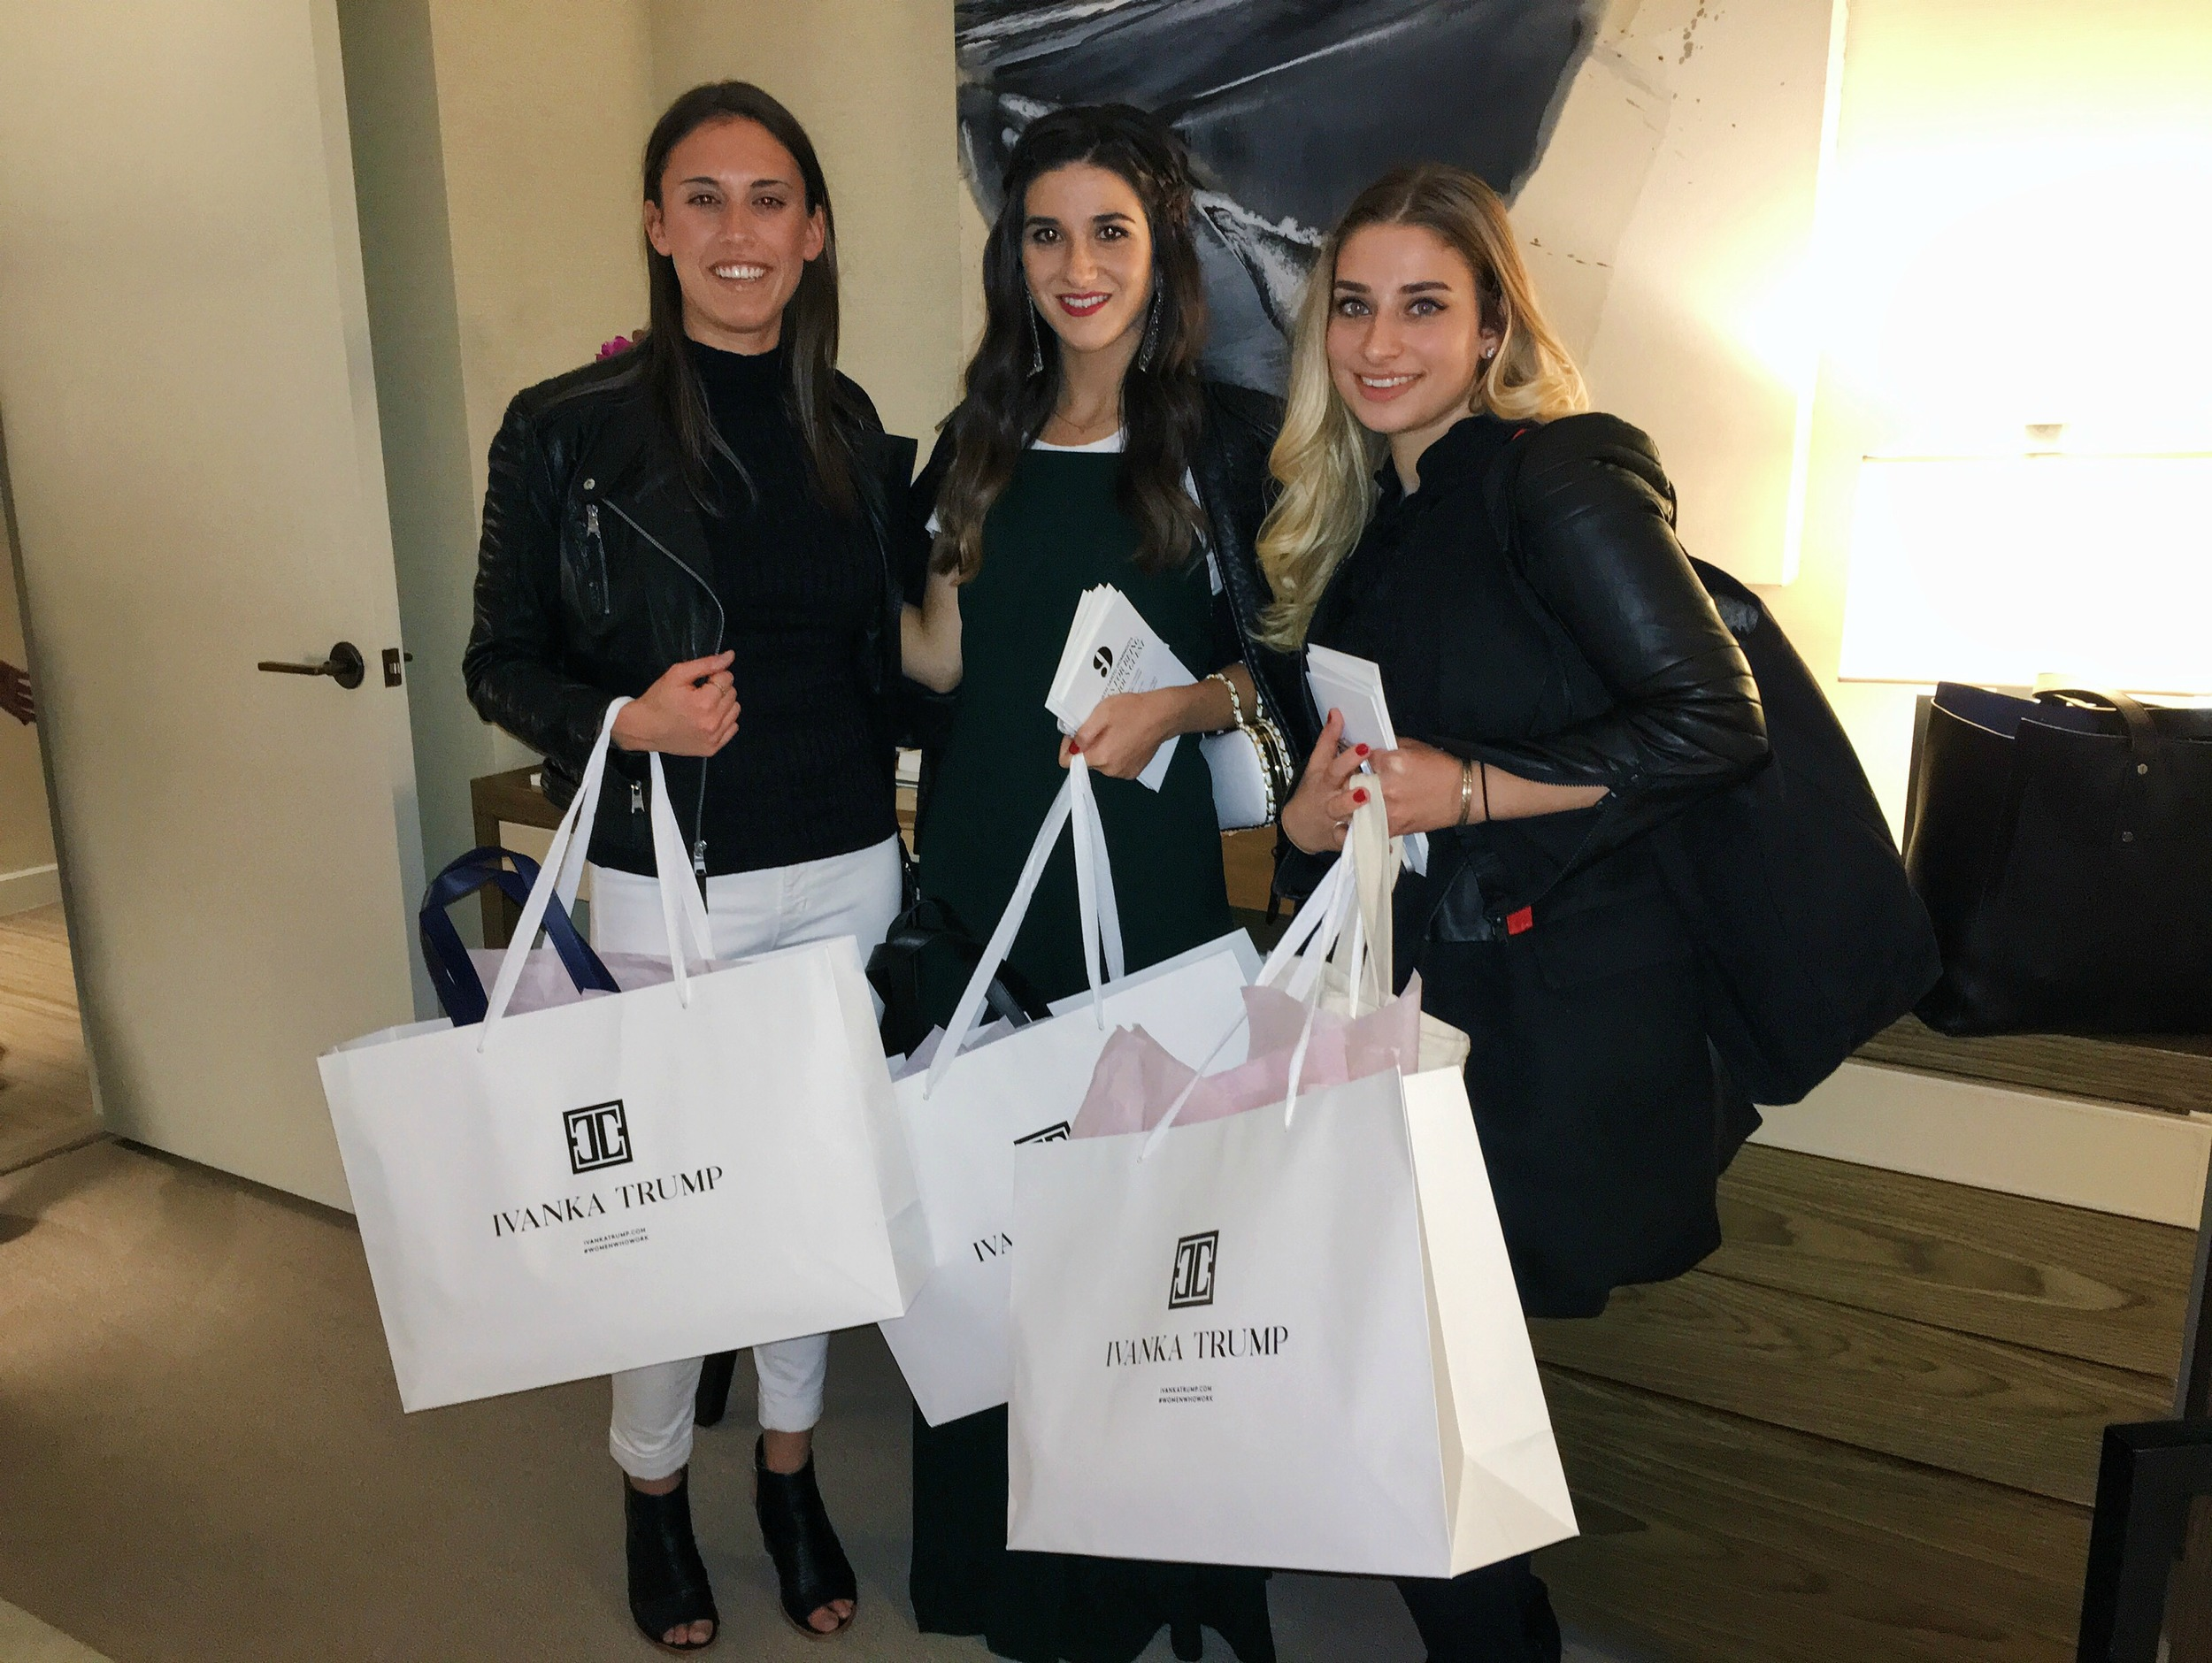 Girls' Night In With Ivanka Trump Louboutins & Love Fashion Blog Esther Santer NYC Street Style Blogger Trump Towers Soho Tote Girls Event Celebs Party Fancy Zara Green Jumpsuit Diamond Earrings Elahn Jewels White Tee Outfit OOTD Preta Fringe Booties.jpg